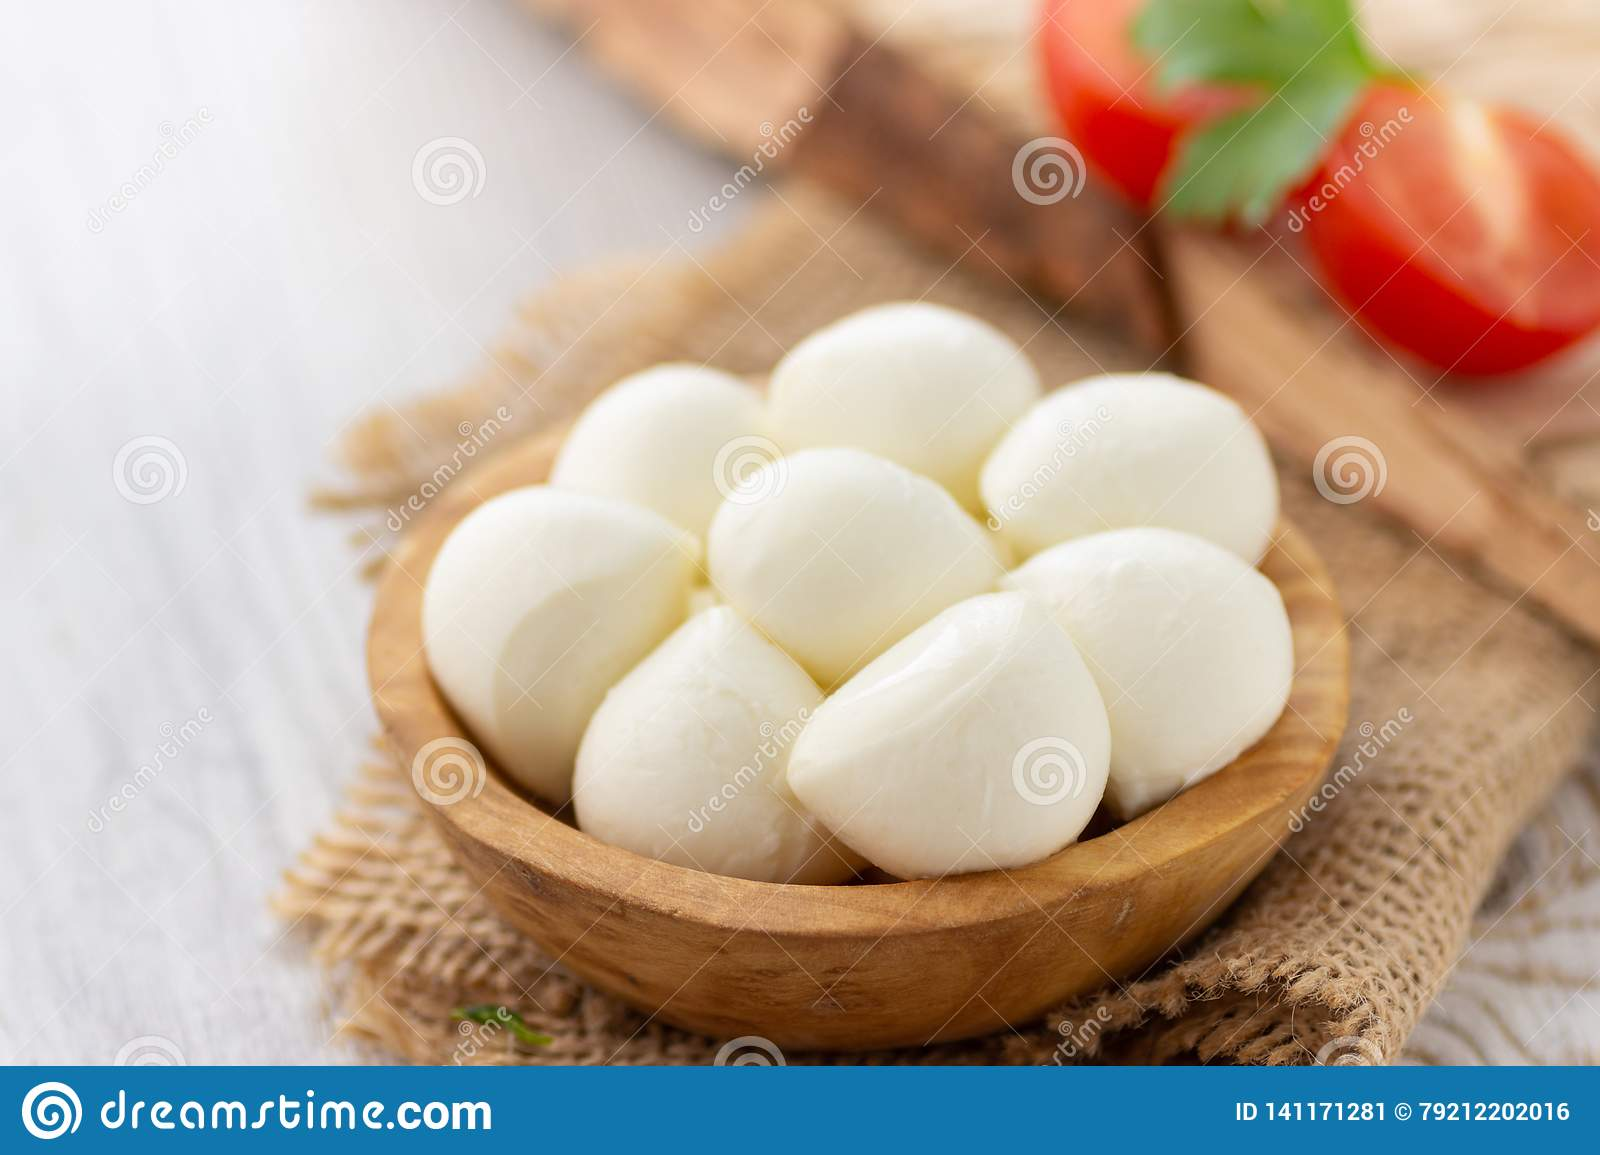 Mozzarella Cheese In Wooden Bowl Stock Image Image Of Food Calories 141171281